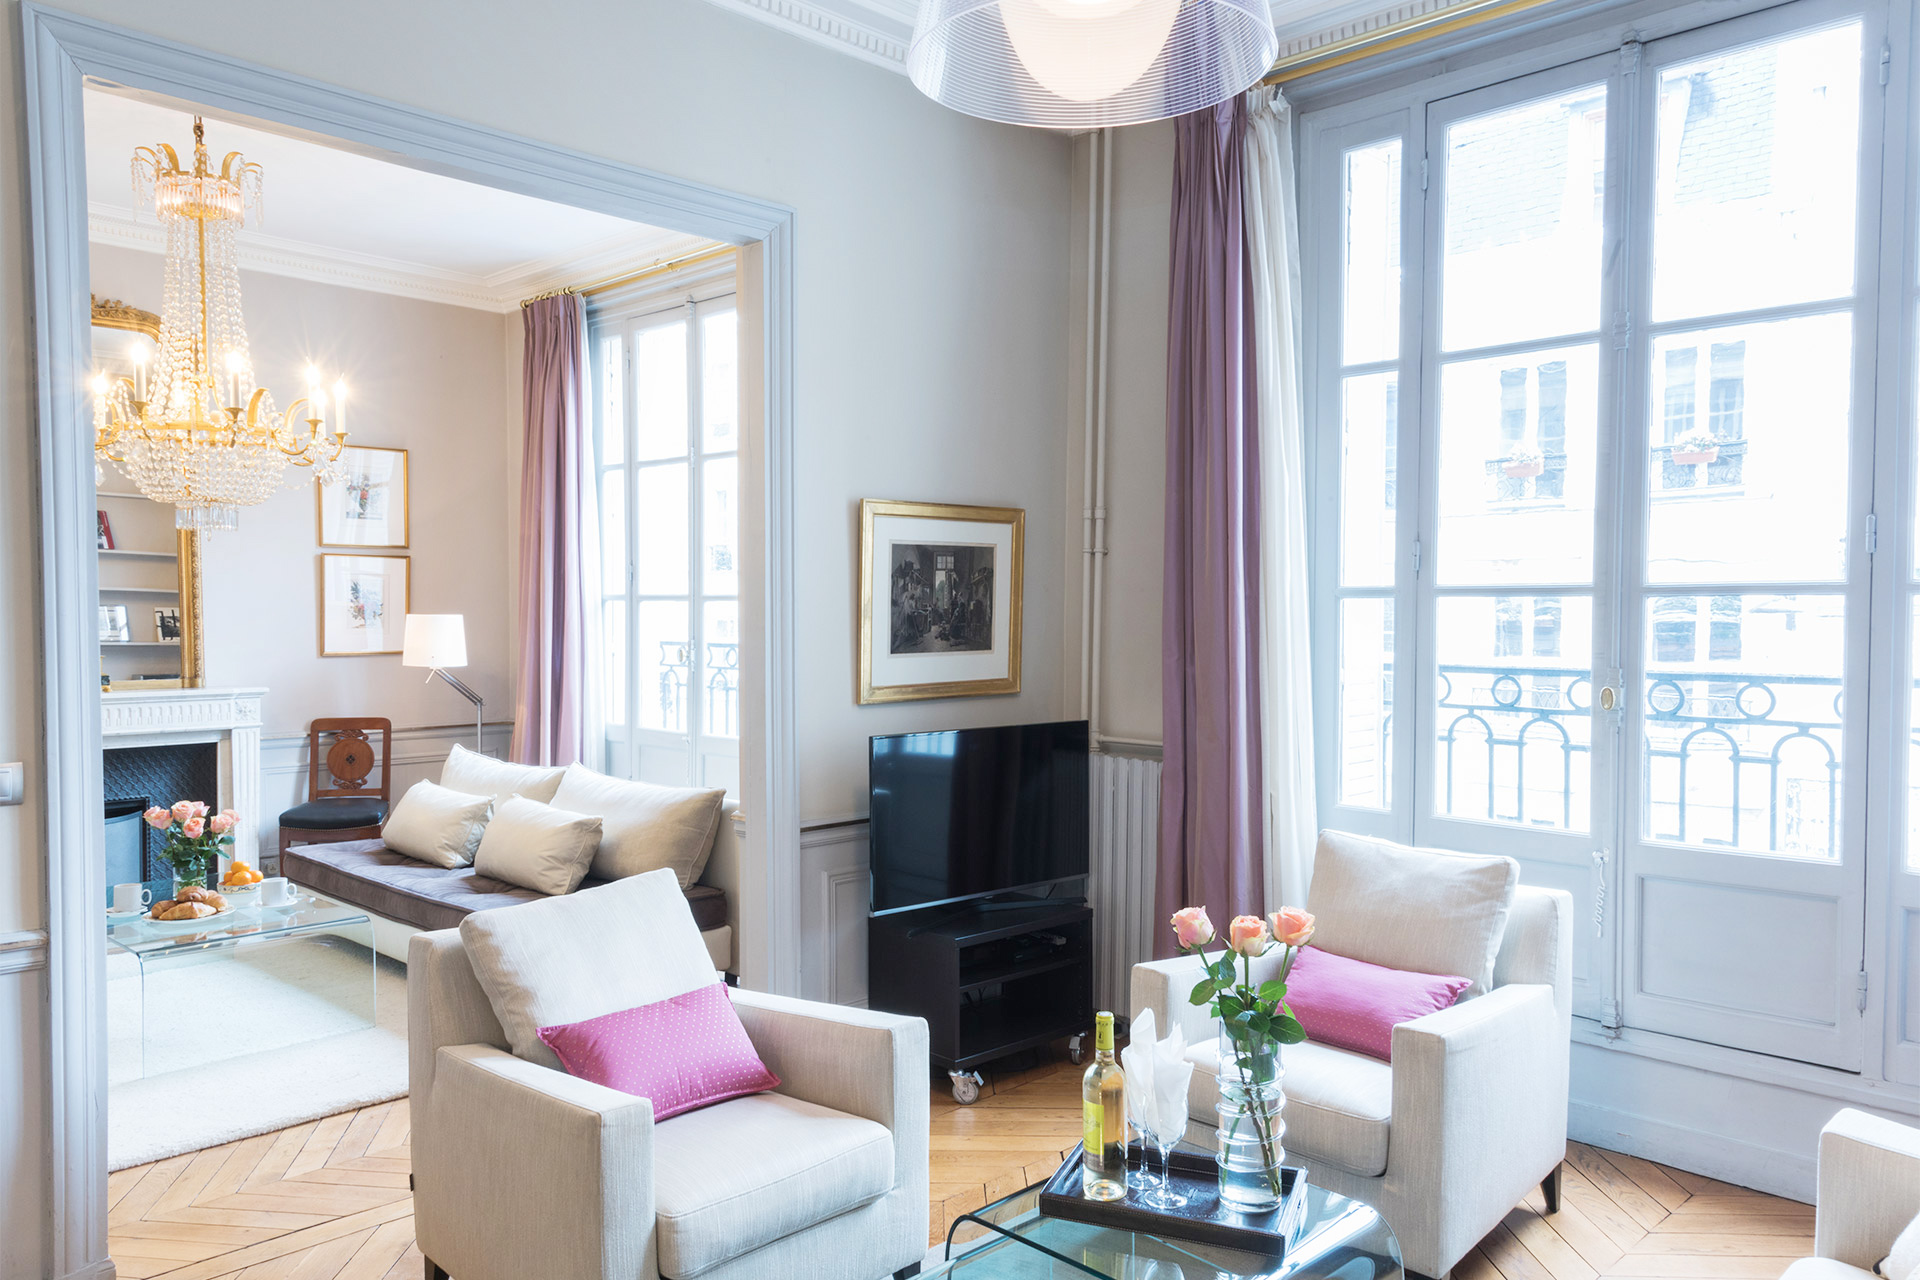 Watch movies on your flat-screen television in the Mâcon vacation rental offered by Paris Perfect